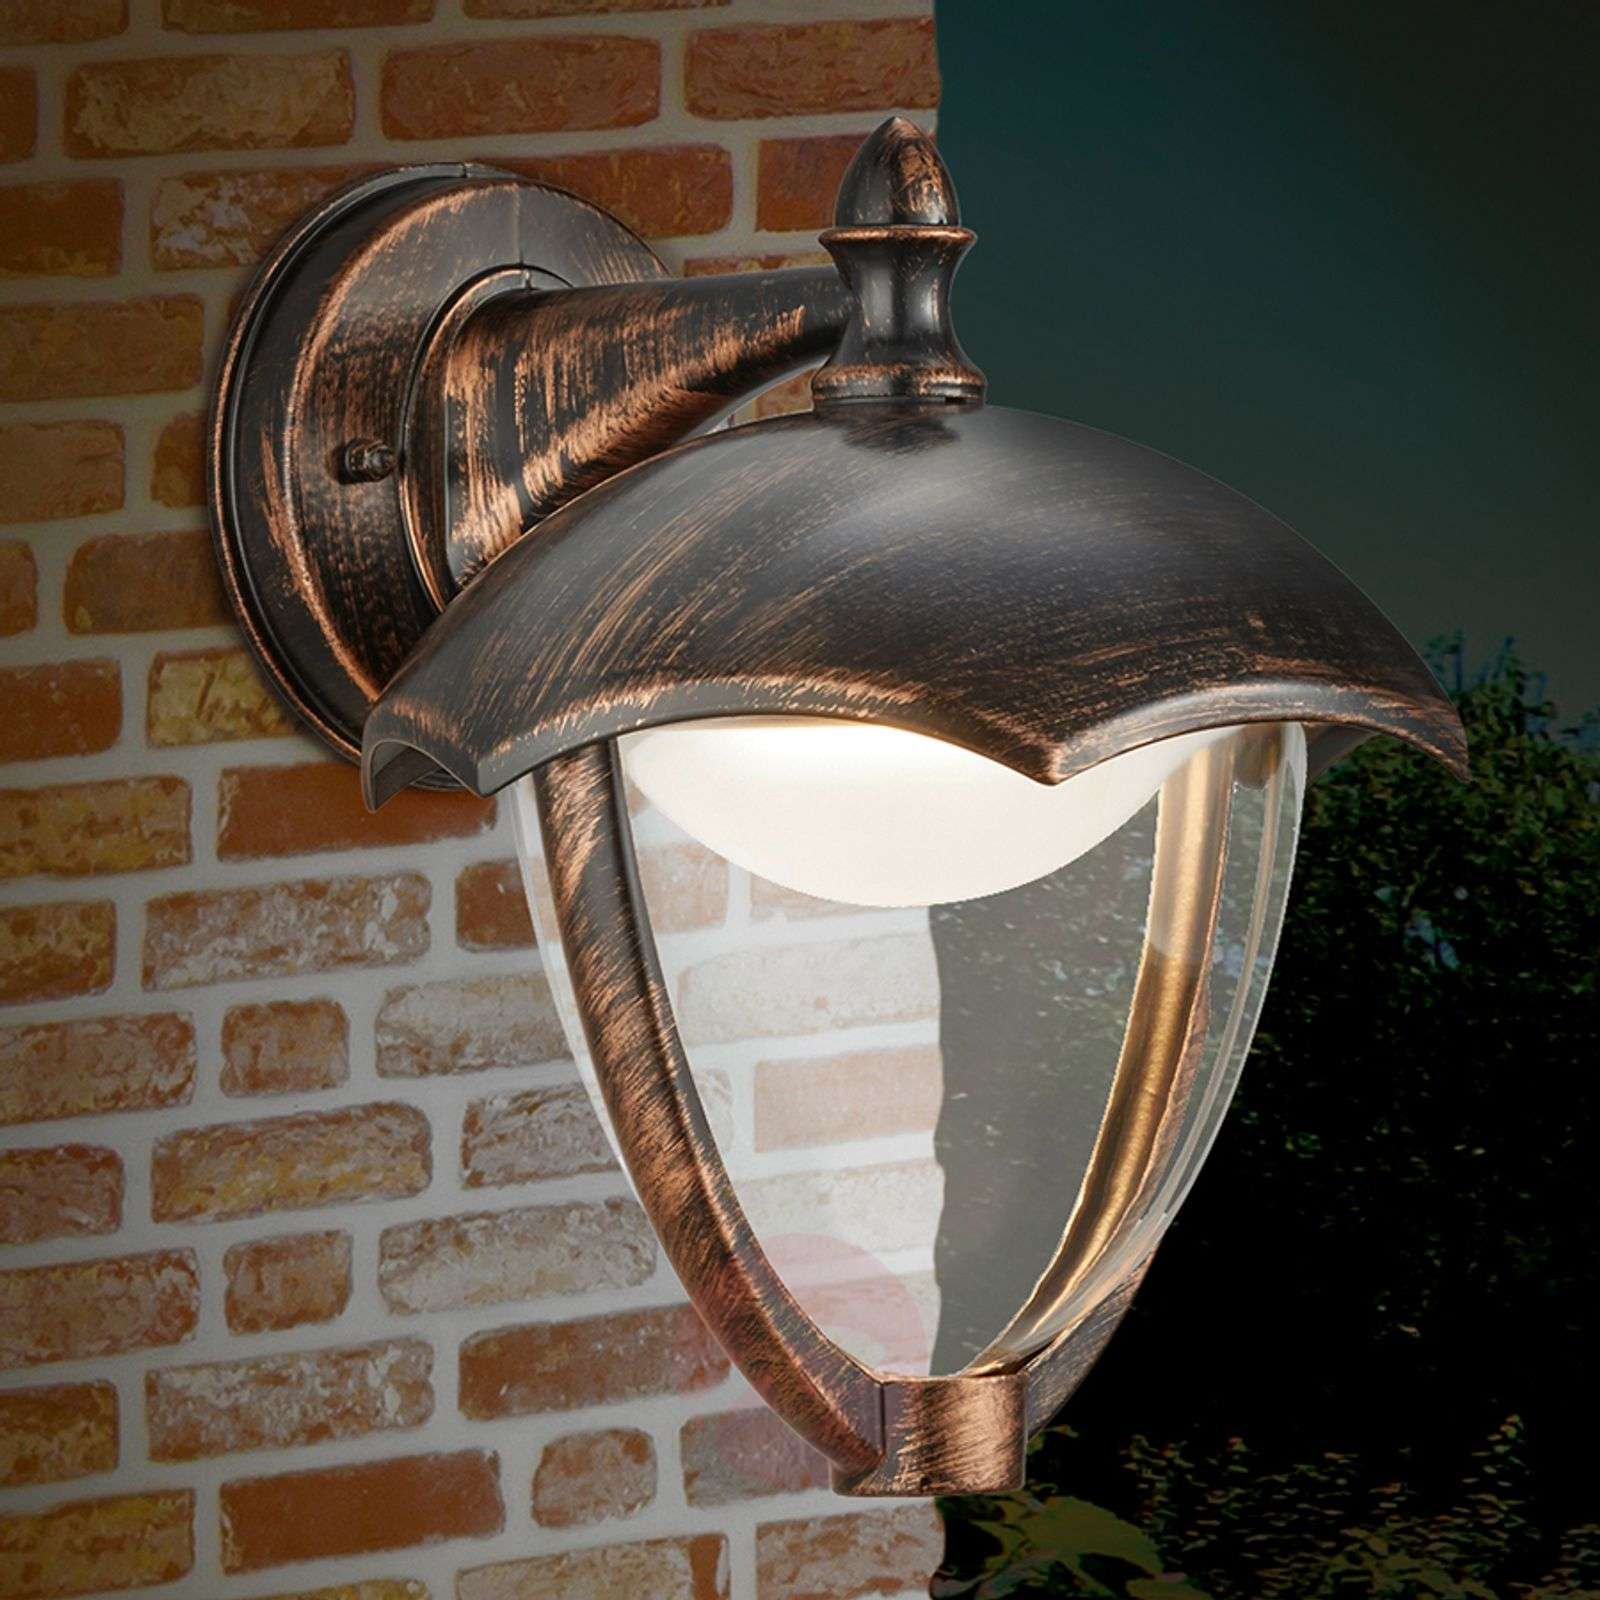 Downlight-LED outdoor wall lamp Gracht-9005320-01